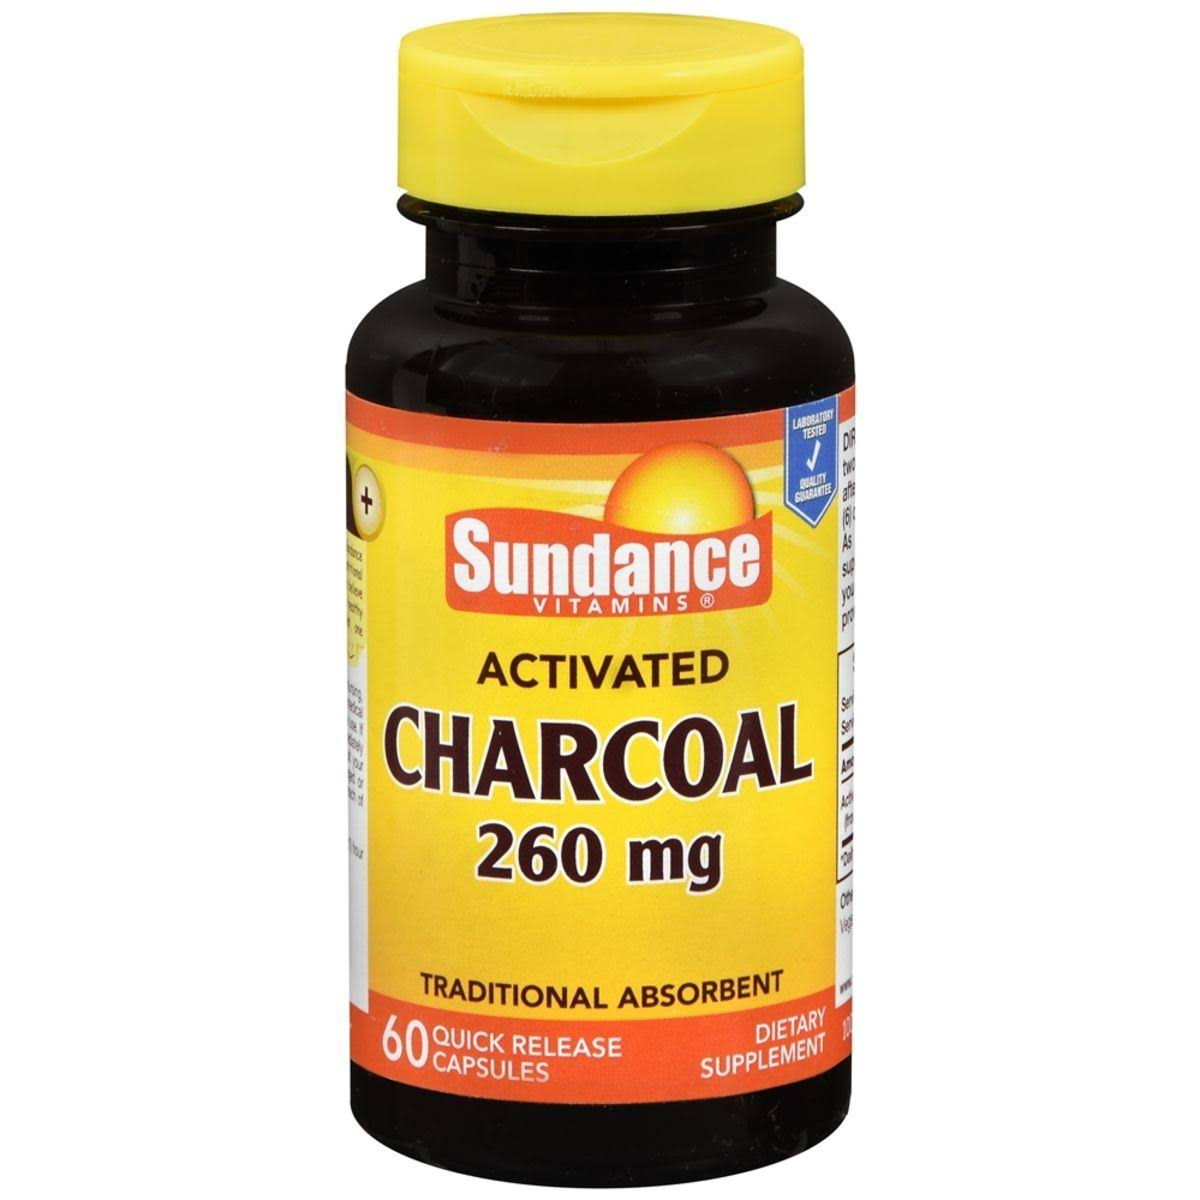 Sundance Vitamins Activated Charcoal Supplements - 60ct